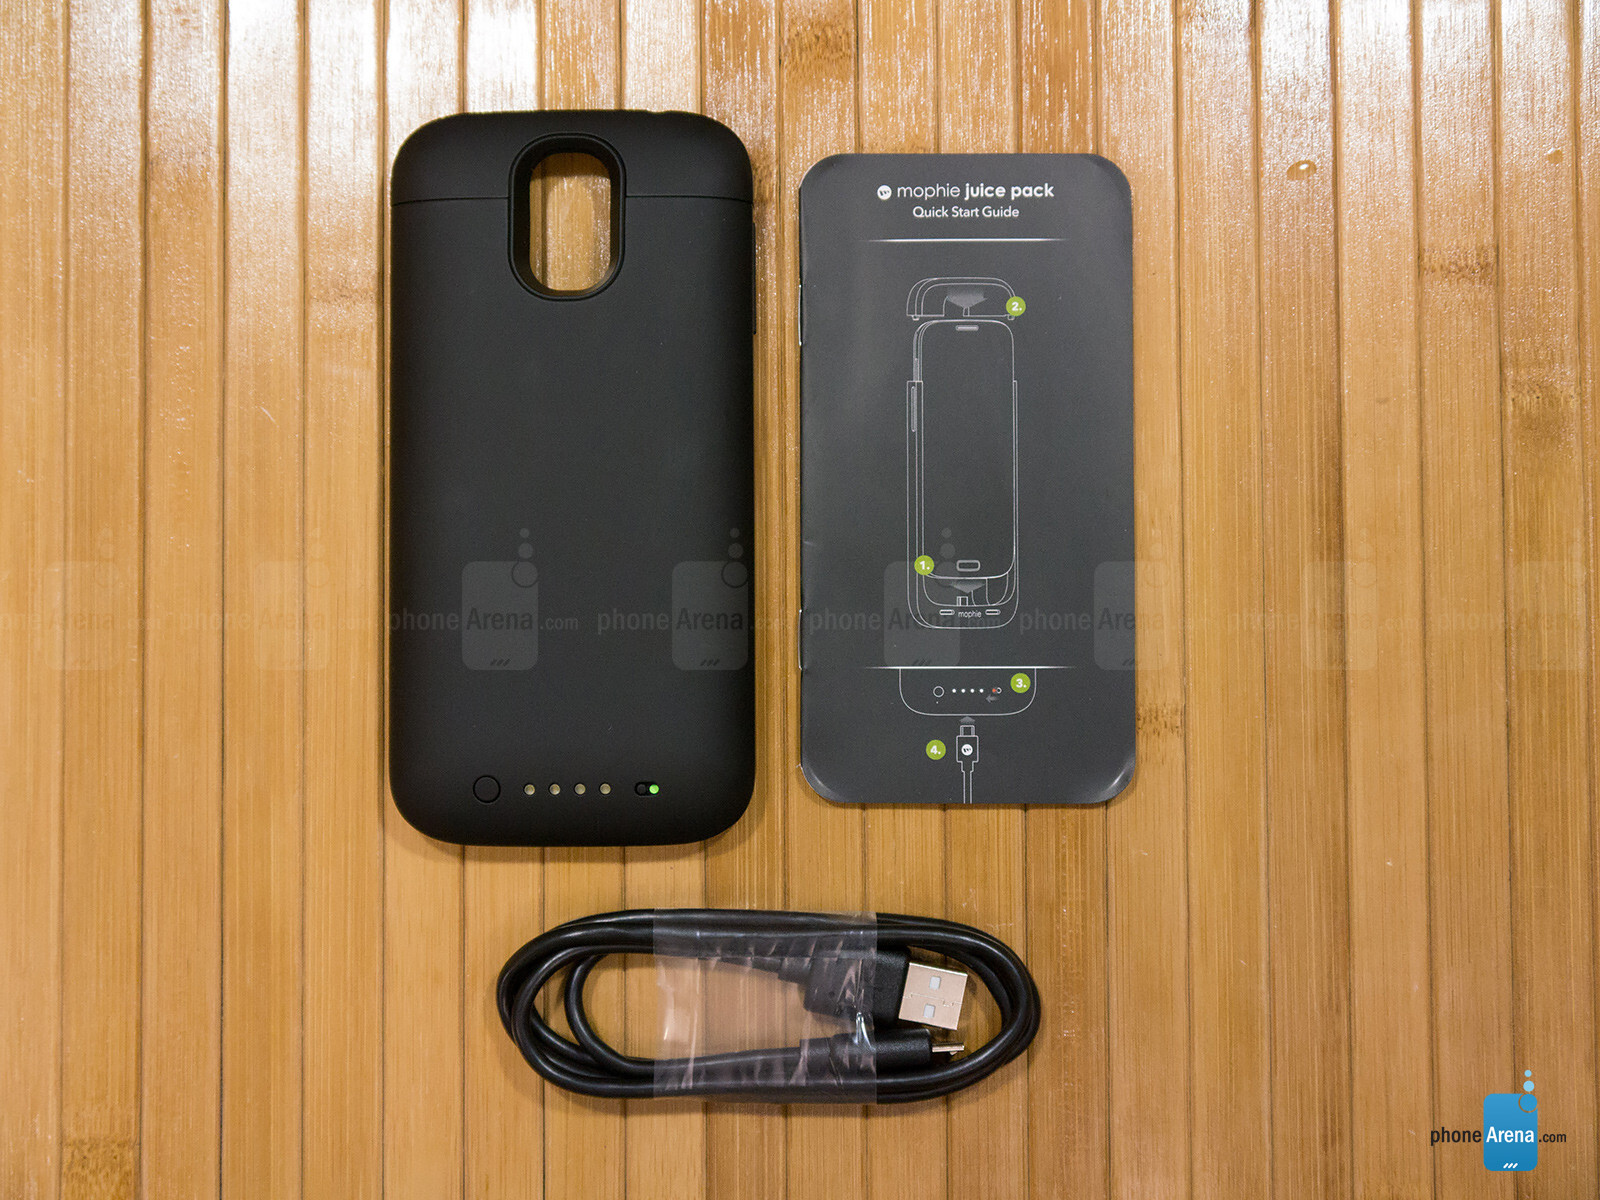 on sale 3ccd2 0a84e Mophie Samsung Galaxy S4 Juice Pack Review - PhoneArena